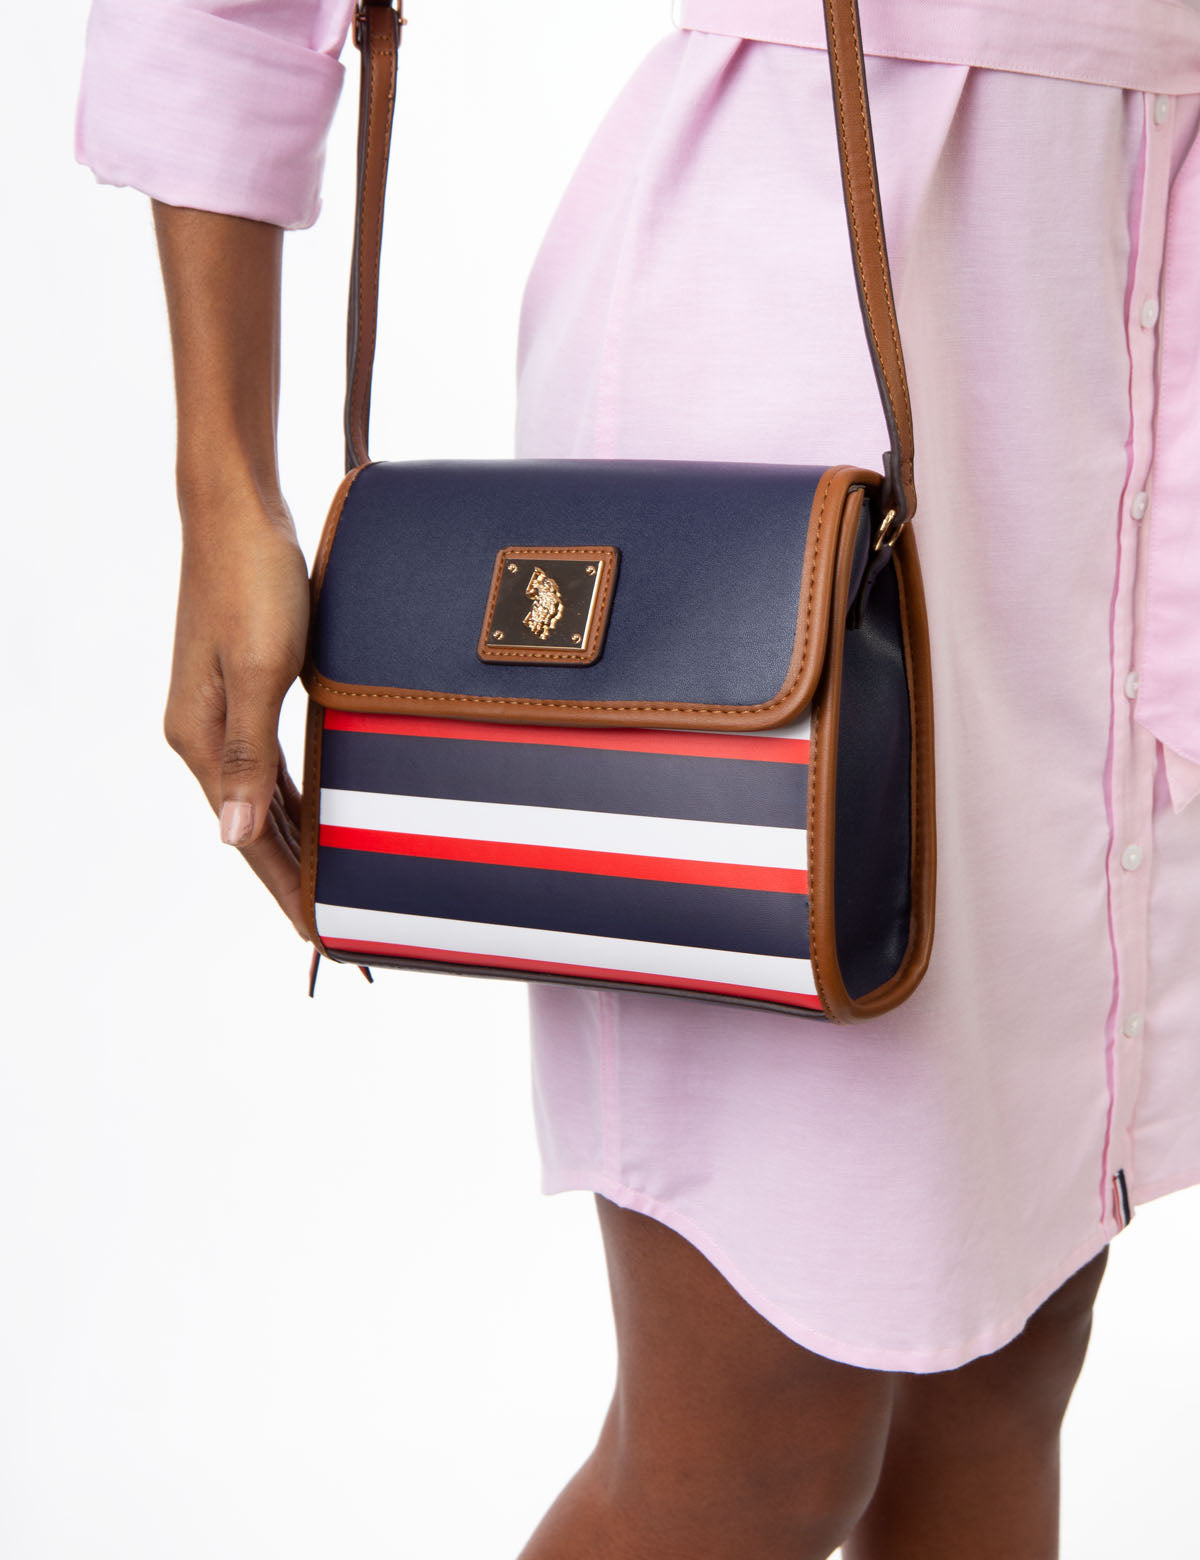 USPA STRIPE CROSSBODY BAG - U.S. Polo Assn.